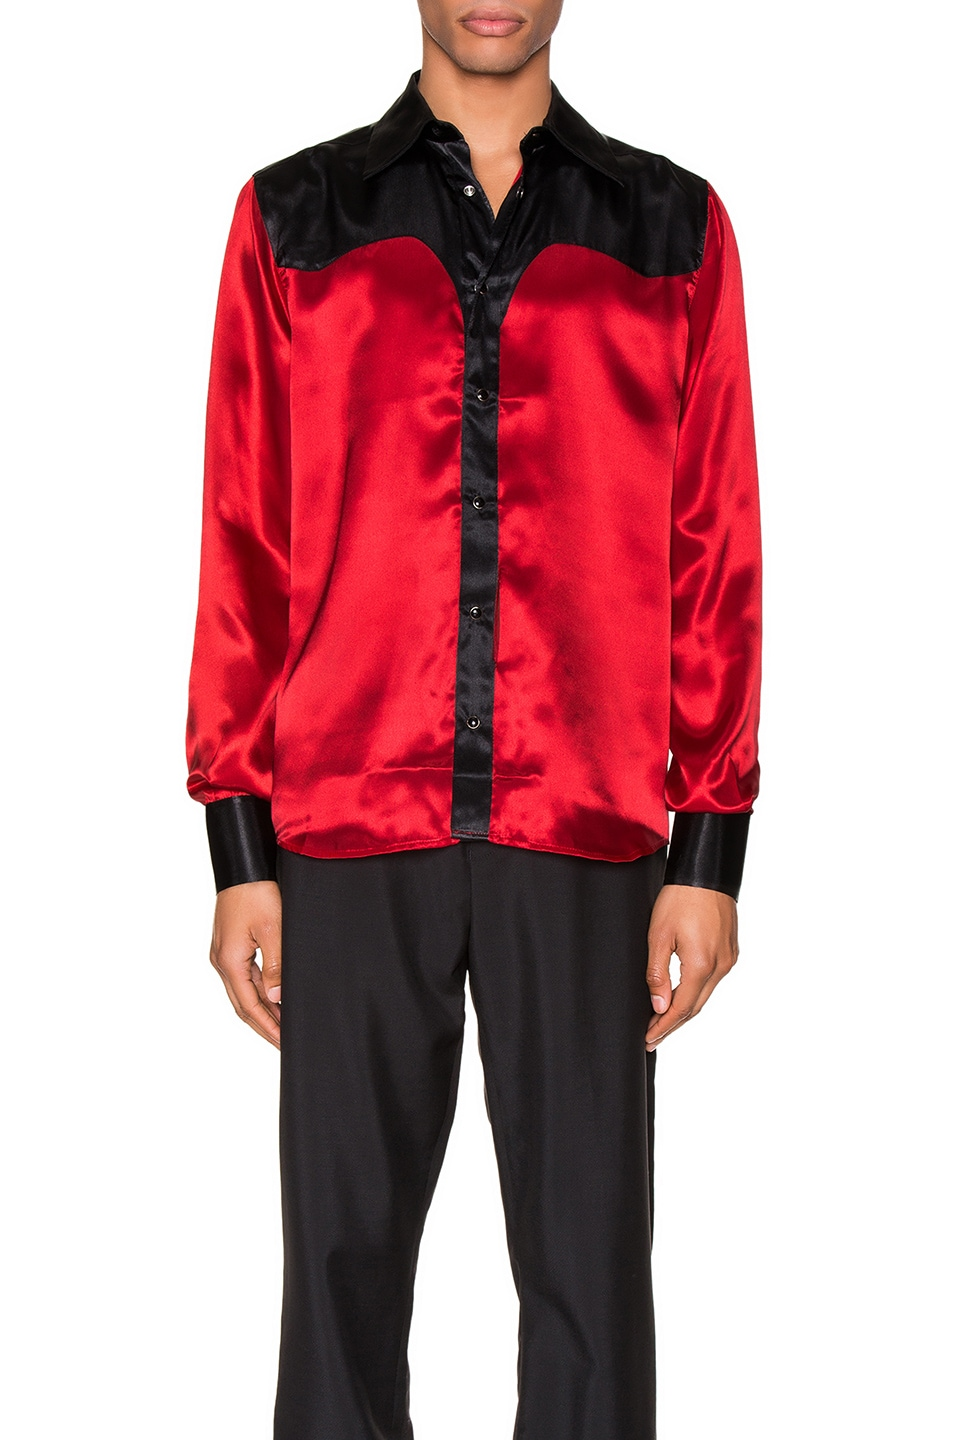 Image 1 of SSS World Corp Western Shirt in Black & Red